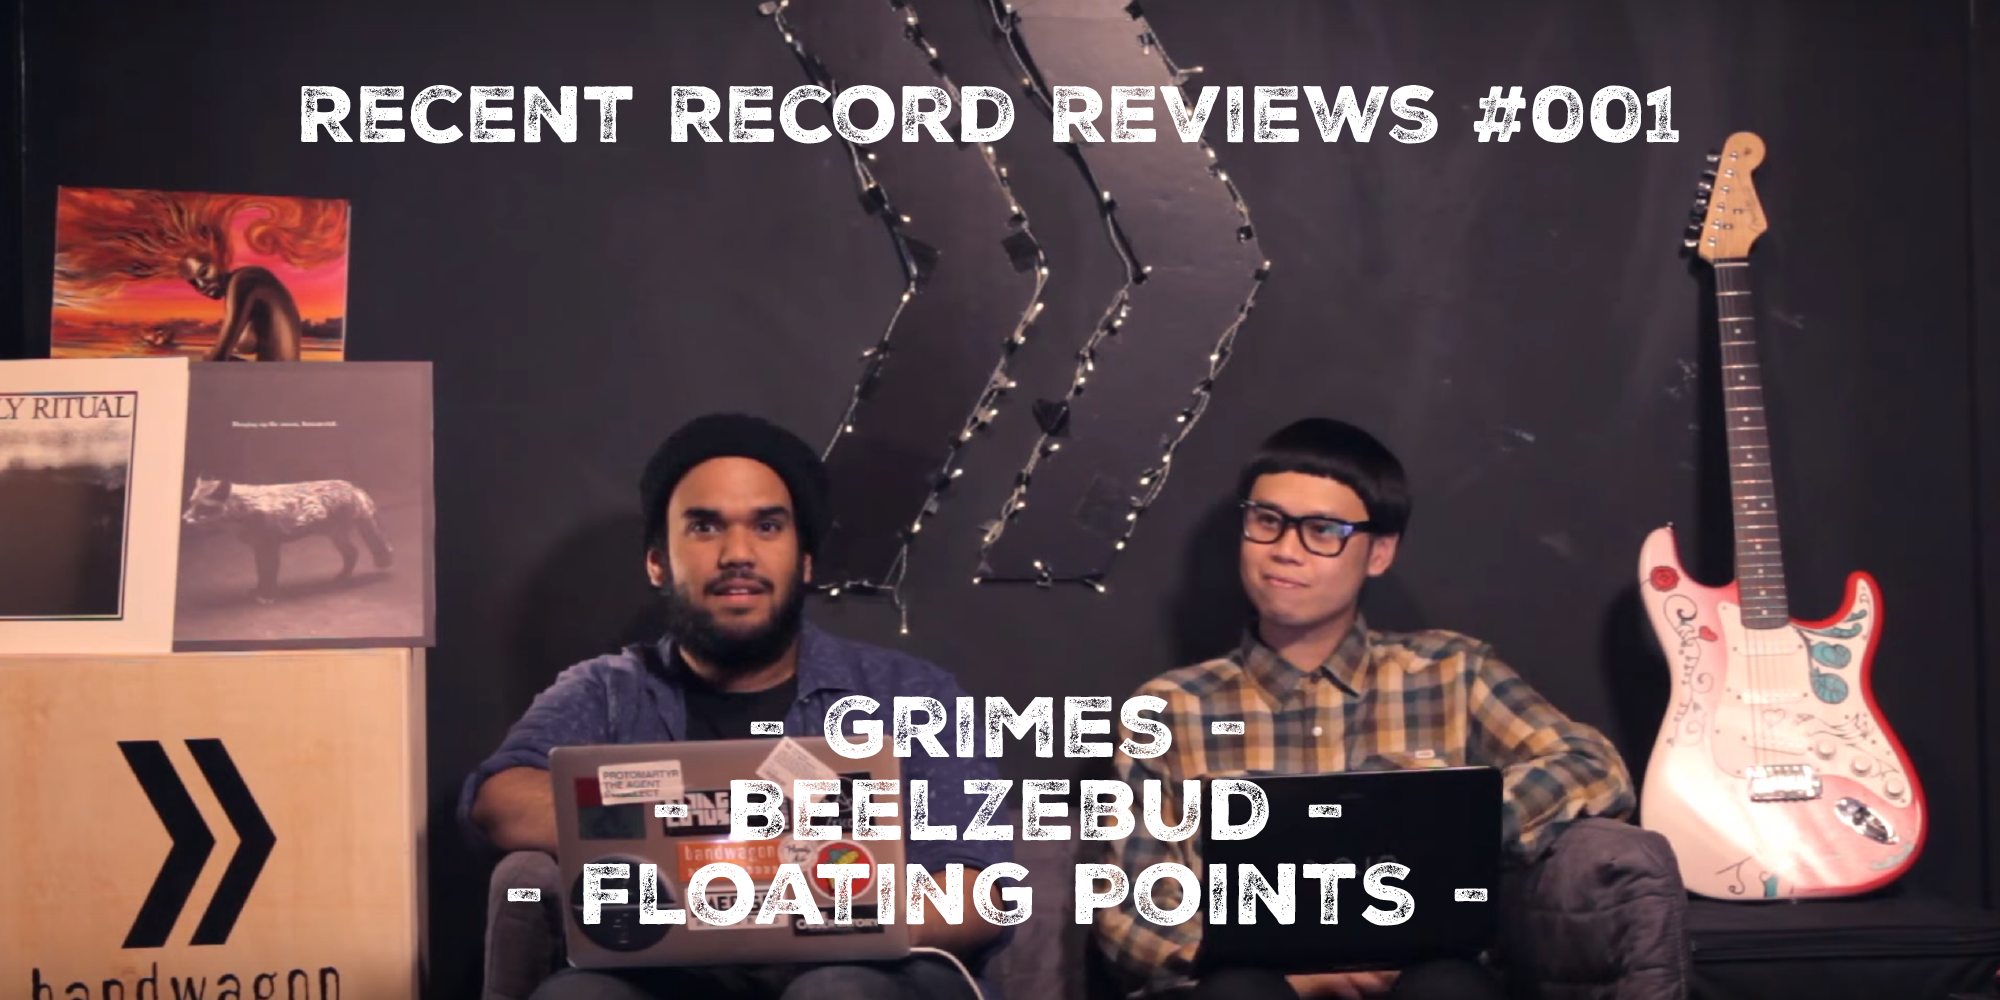 WATCH: Bandwagon Recent Record Reviews #001 - Grimes, Beelzebud, Floating Points